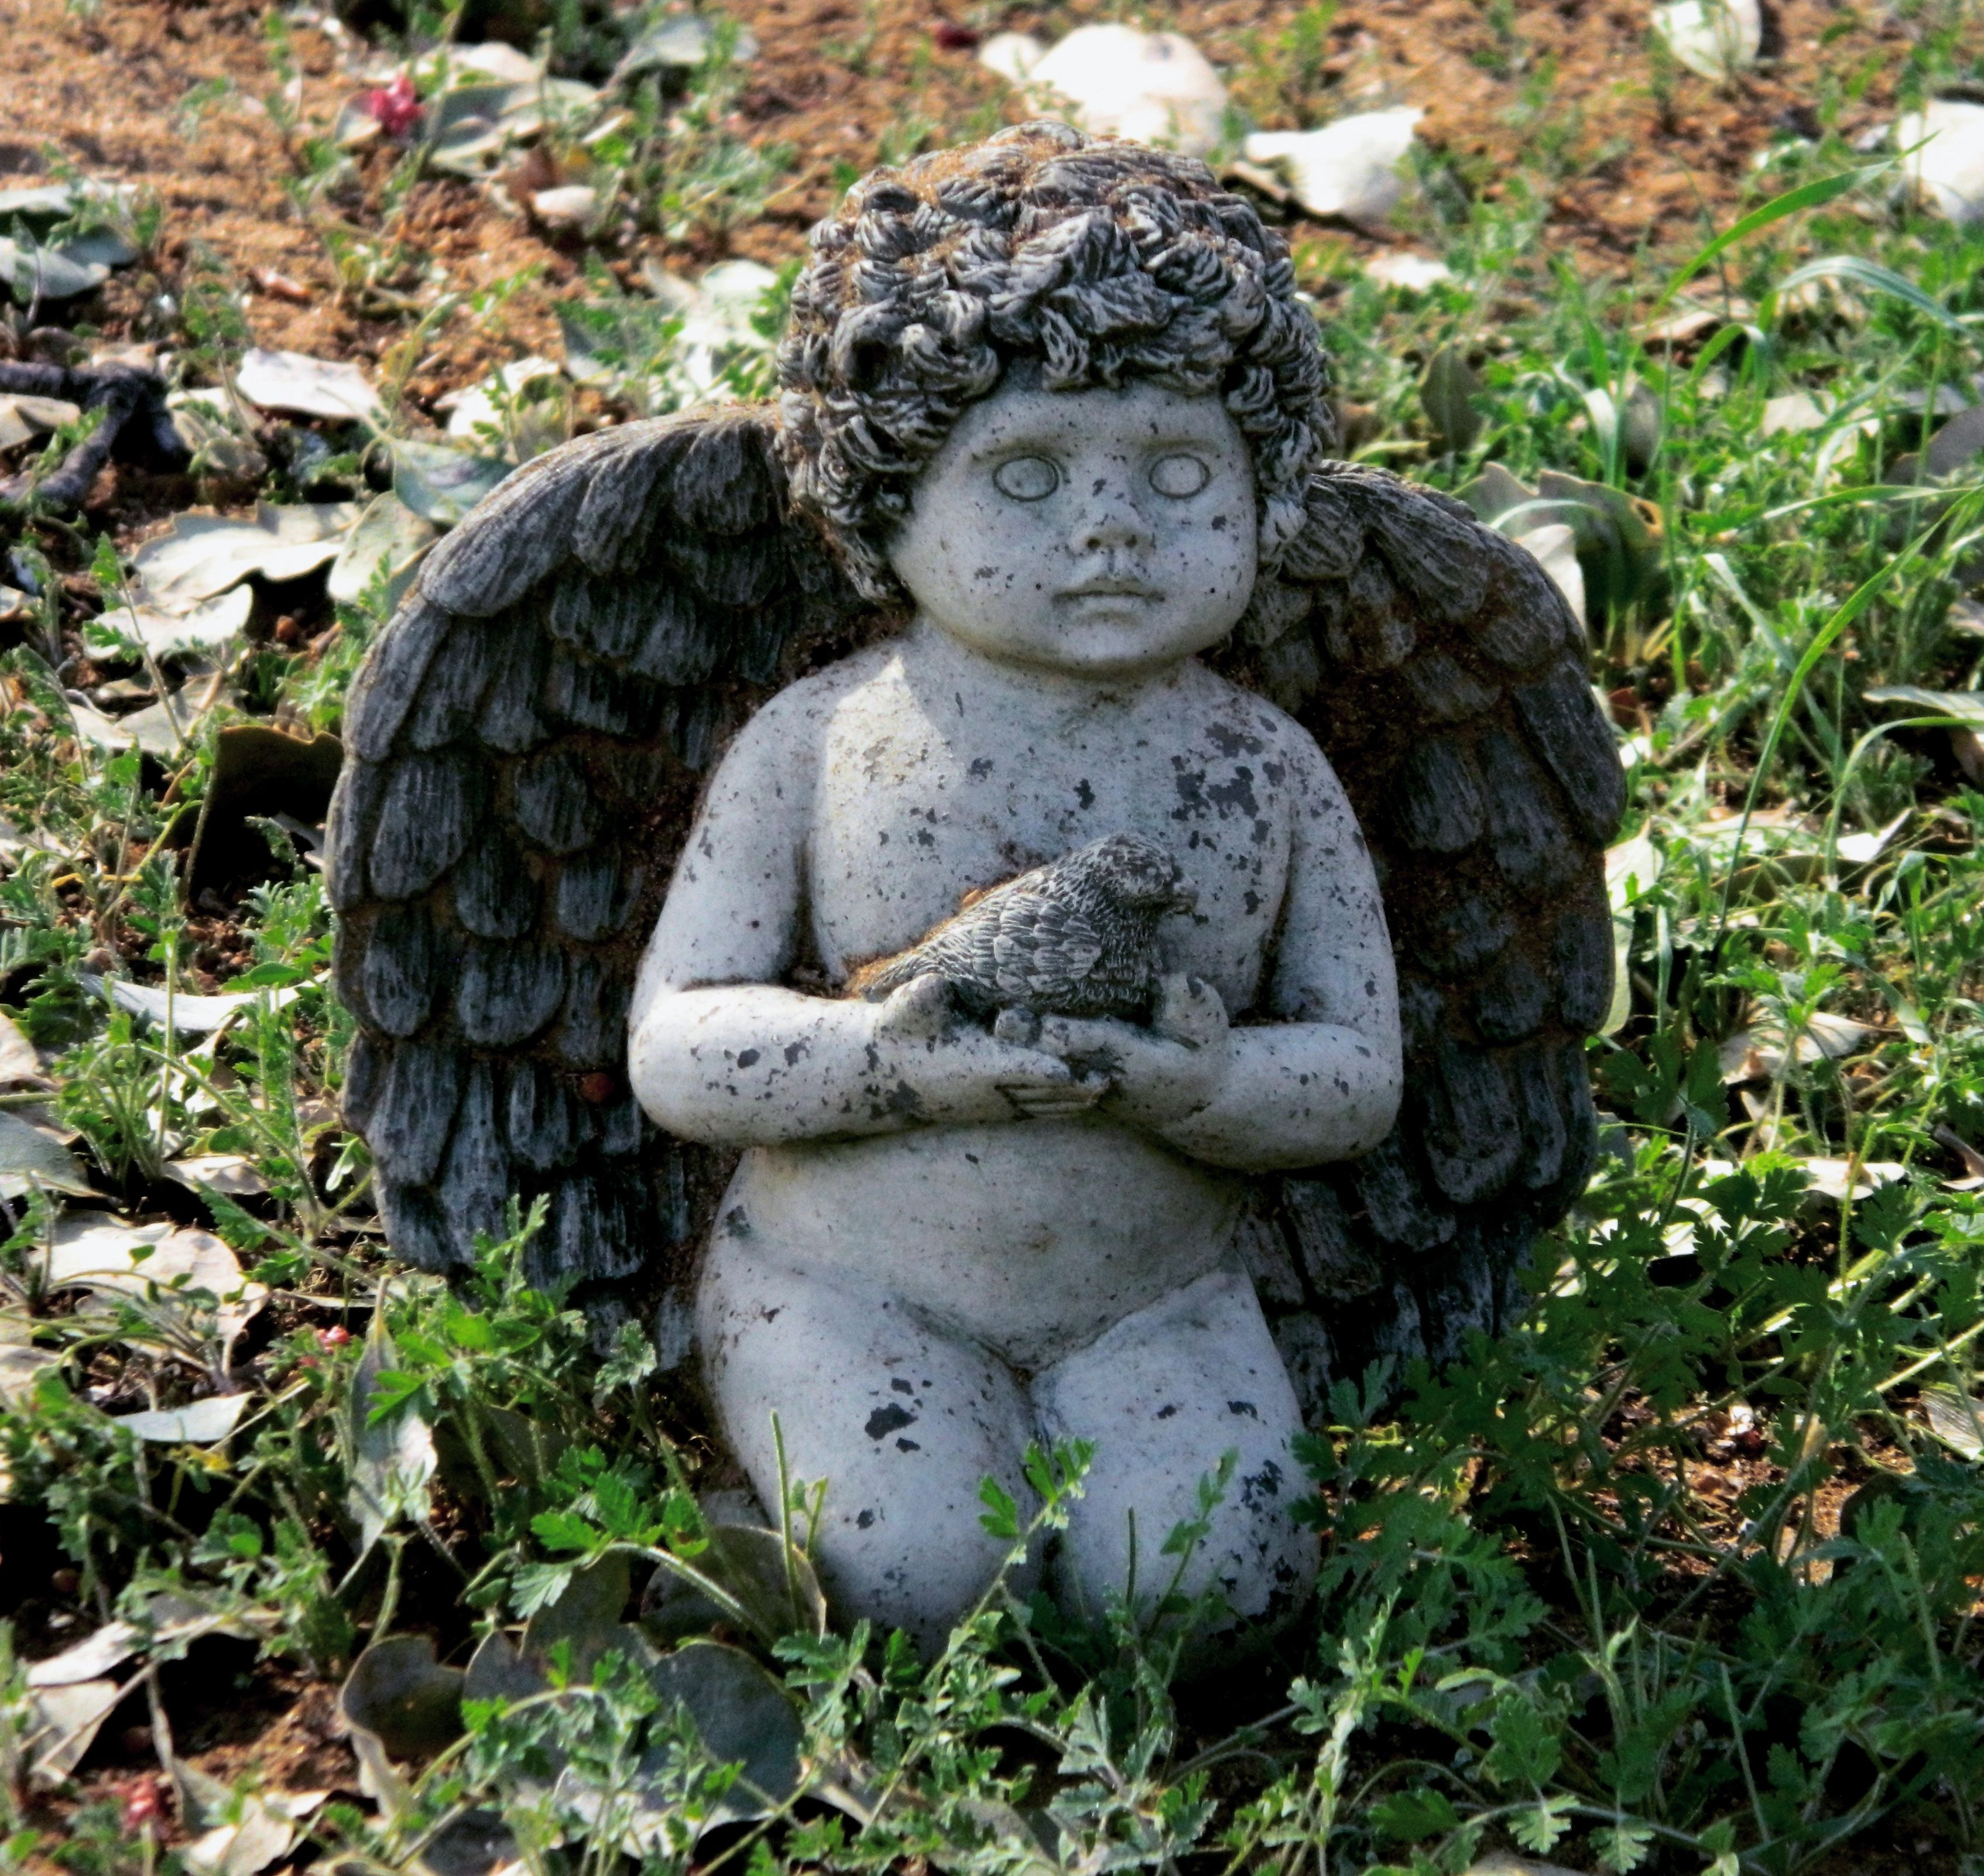 Small Angel Statues For Graves: A Small Statue Of A Cherub Found Sitting Next To A Child's